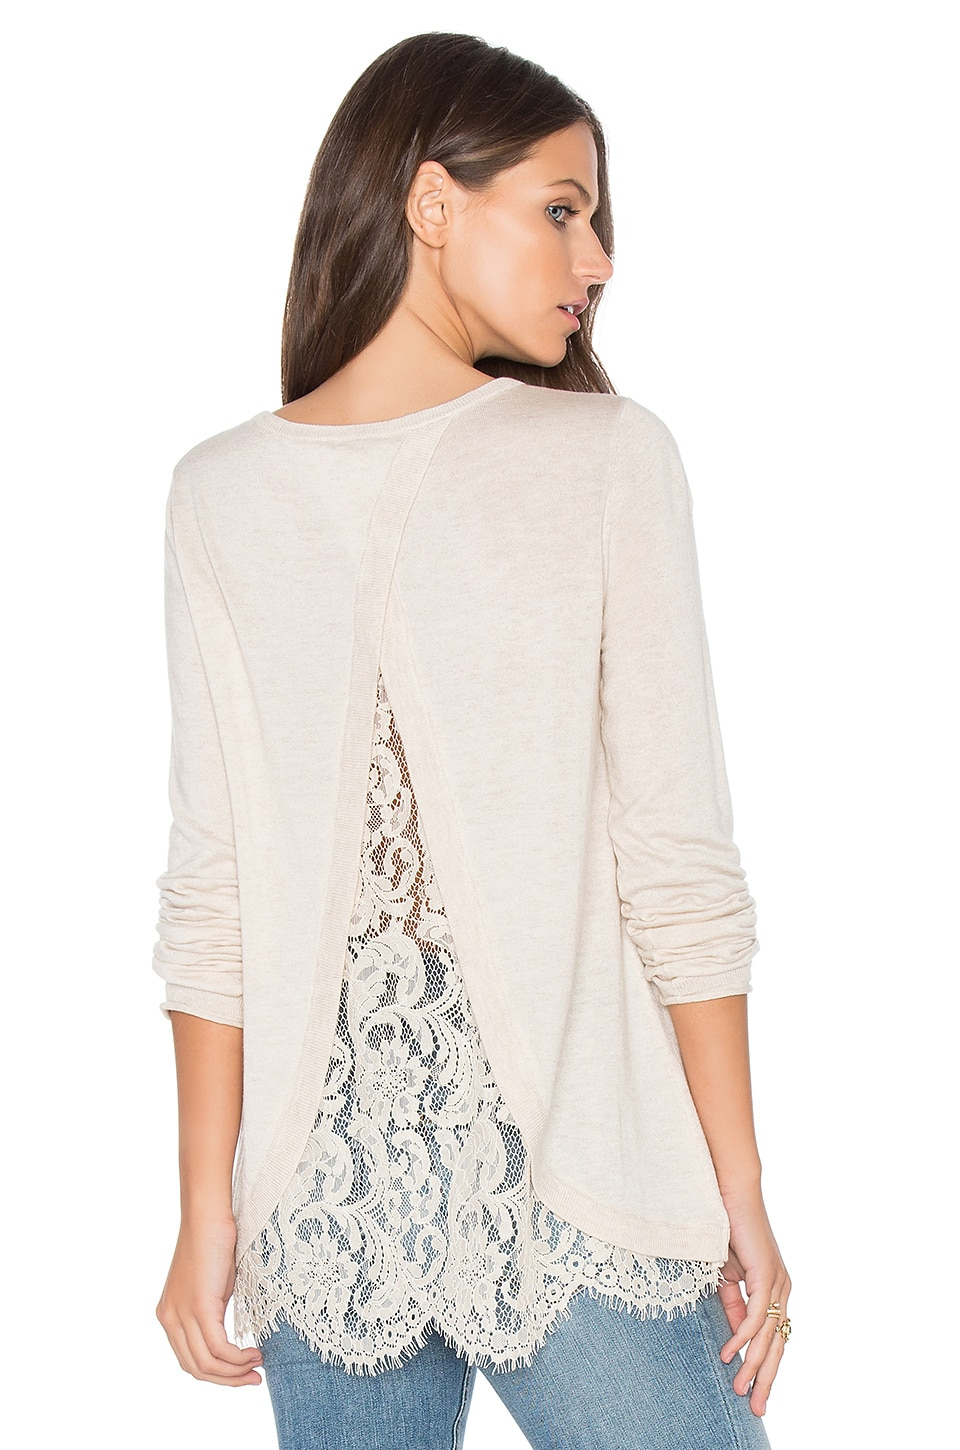 Joie Marianna Sweater in Heather Antique White